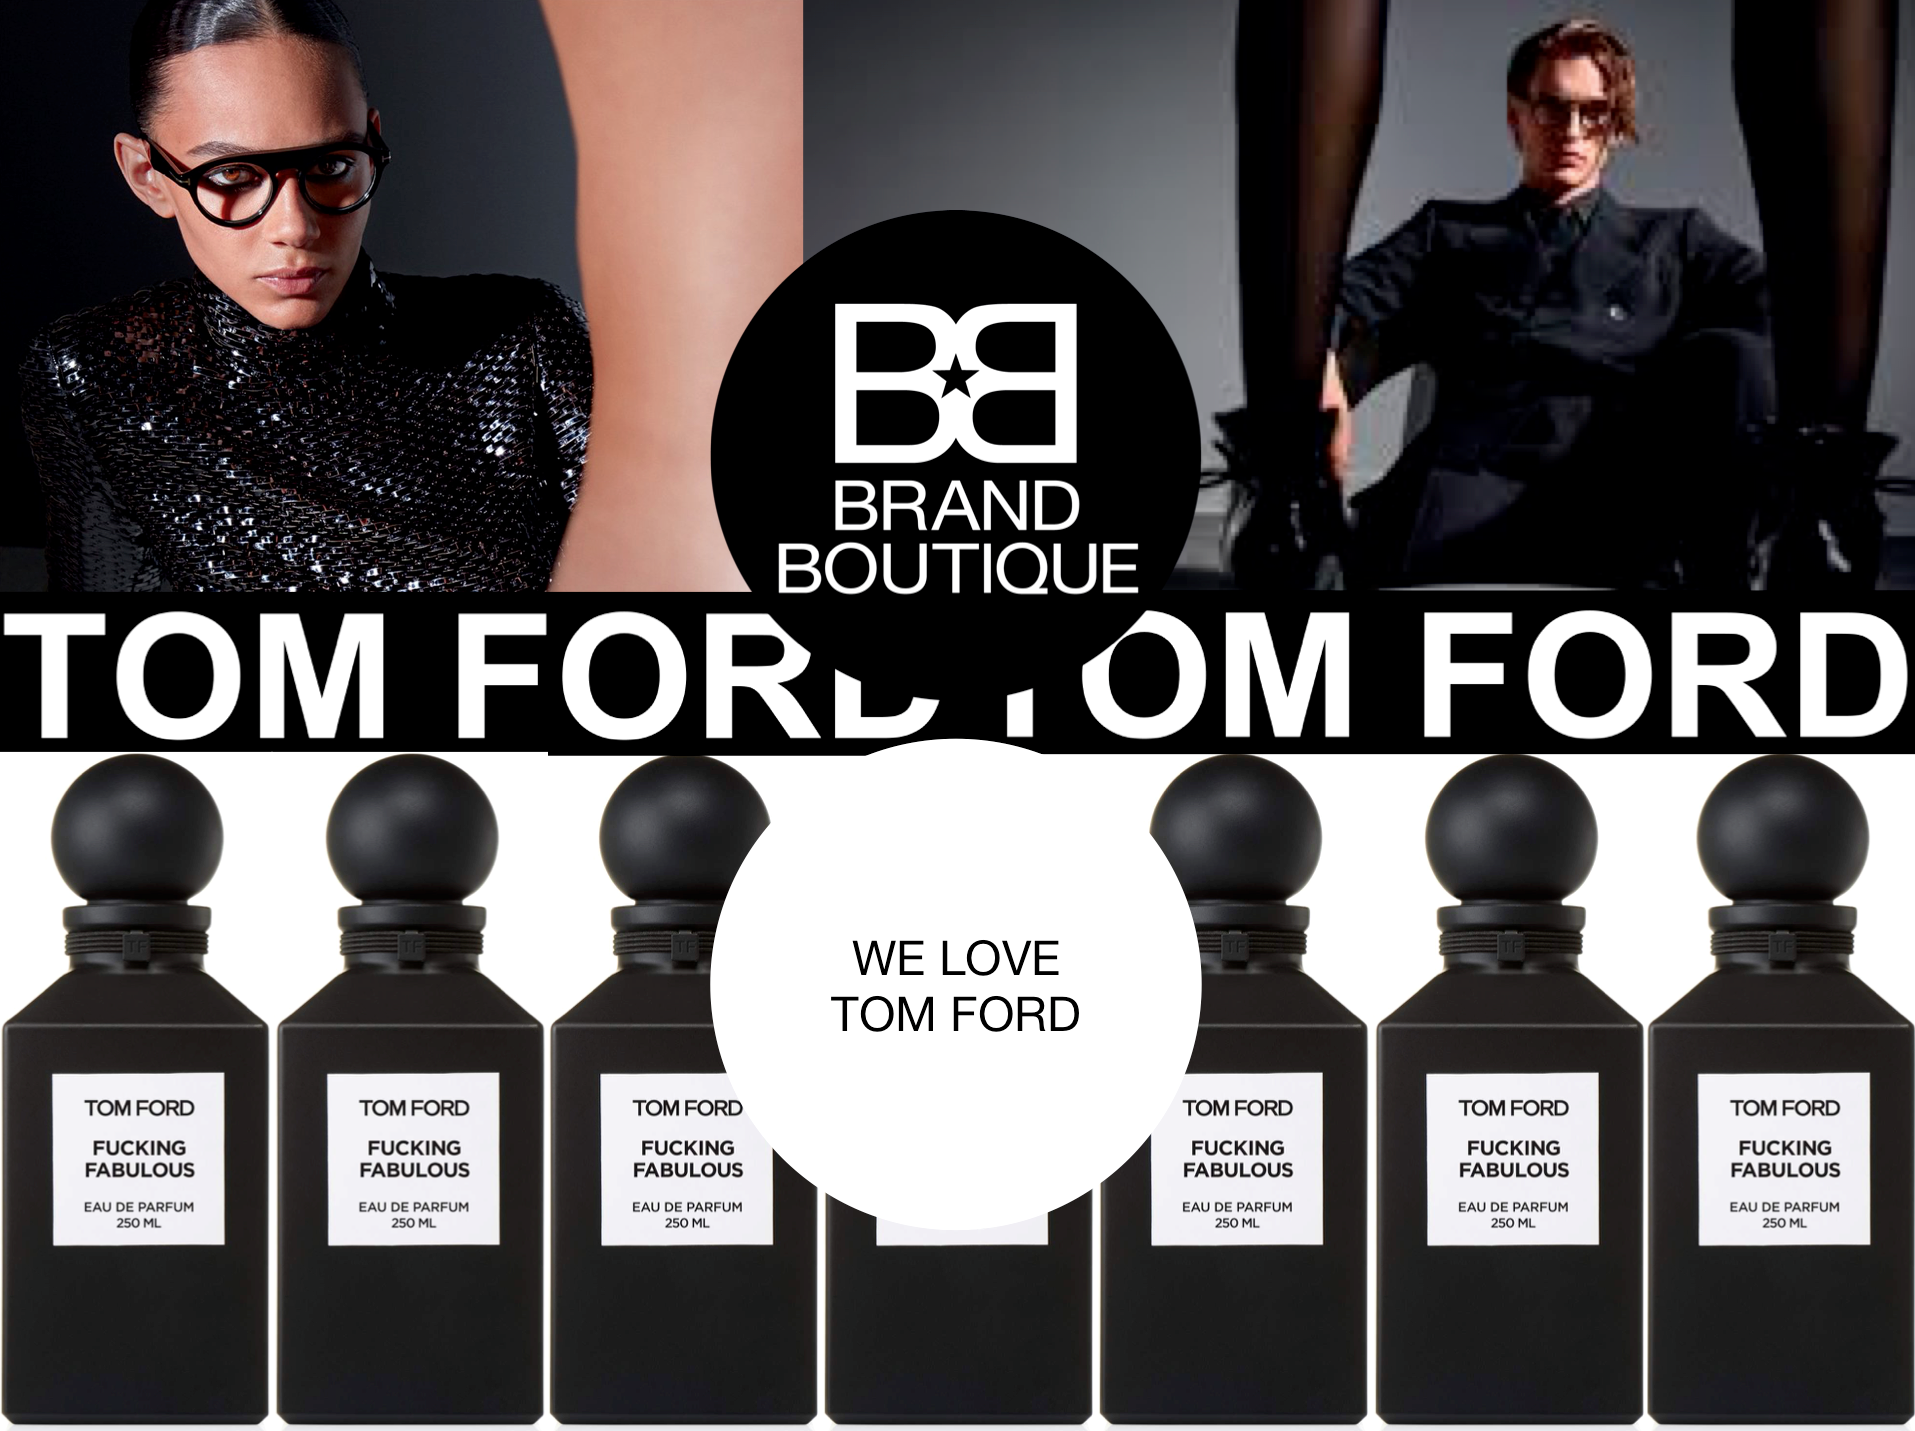 Iconic Brand Series No 3 Tom Ford Brand Boutique